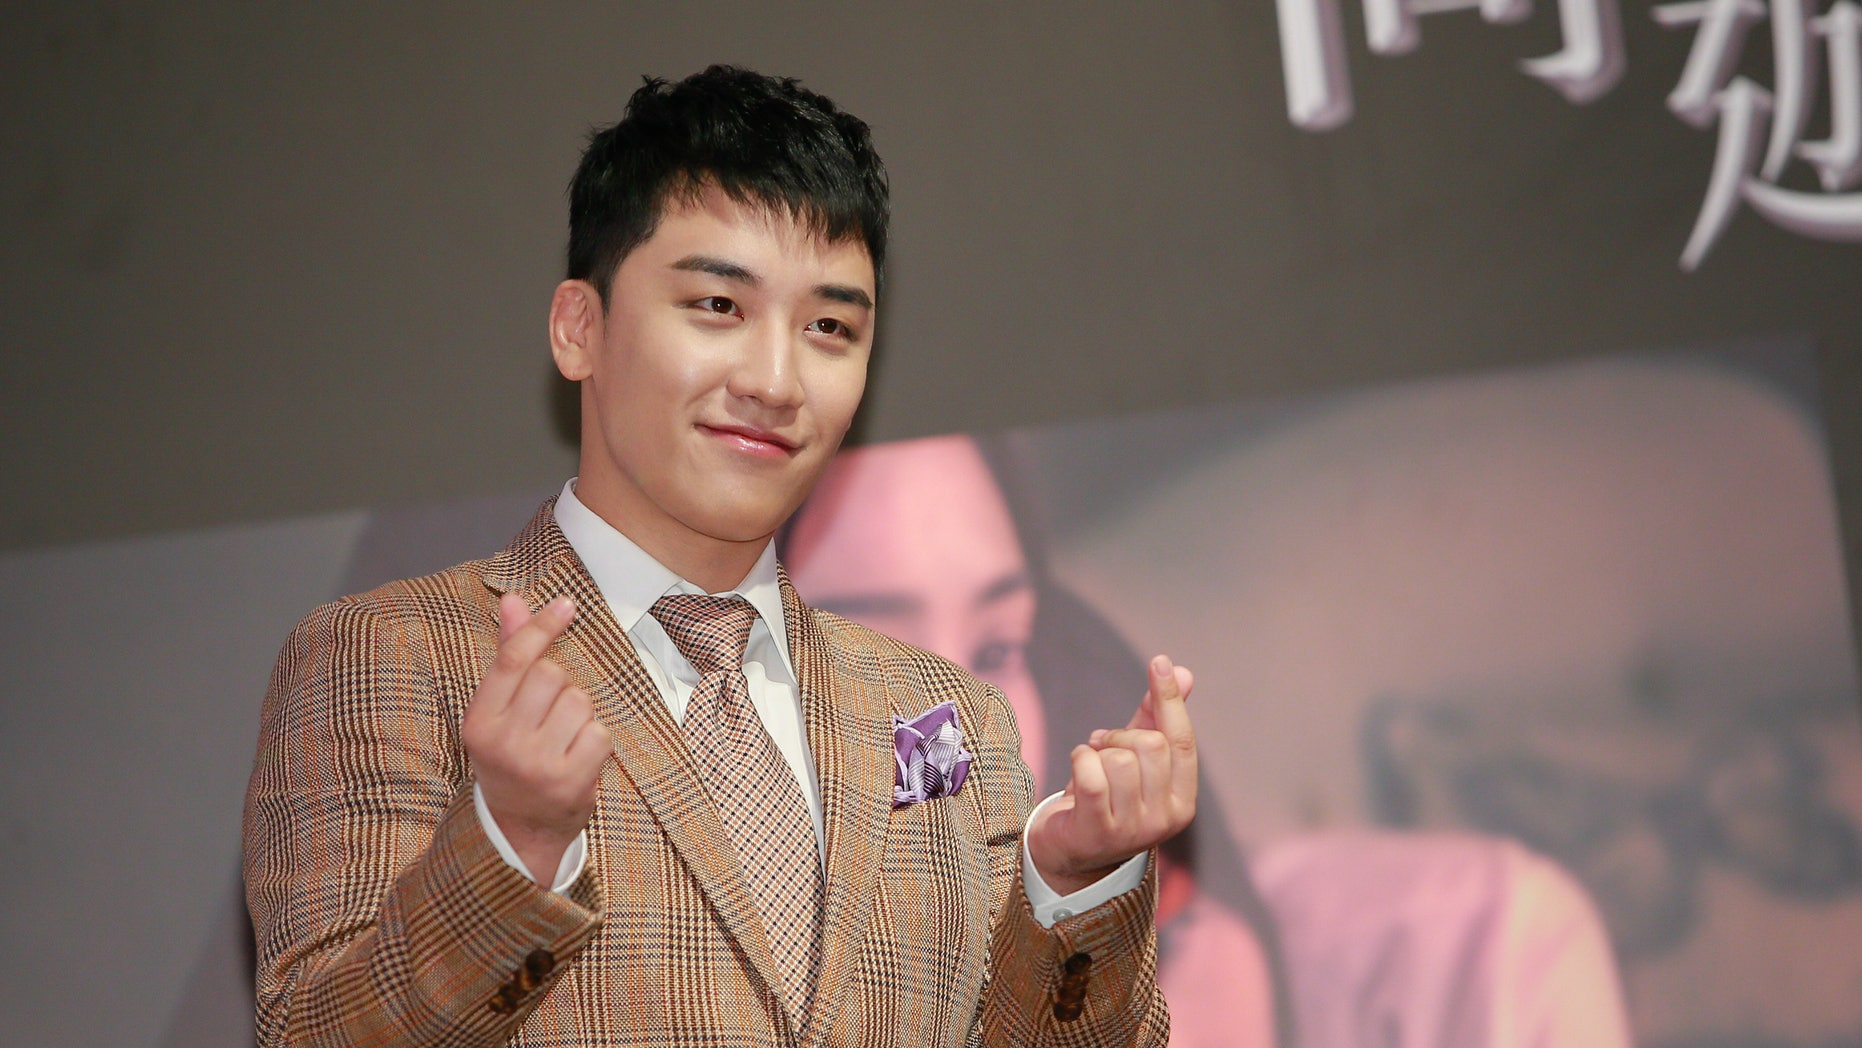 Big Bang's Seungri Quits The Music Industry Amid Prostitution Scandal Allegations